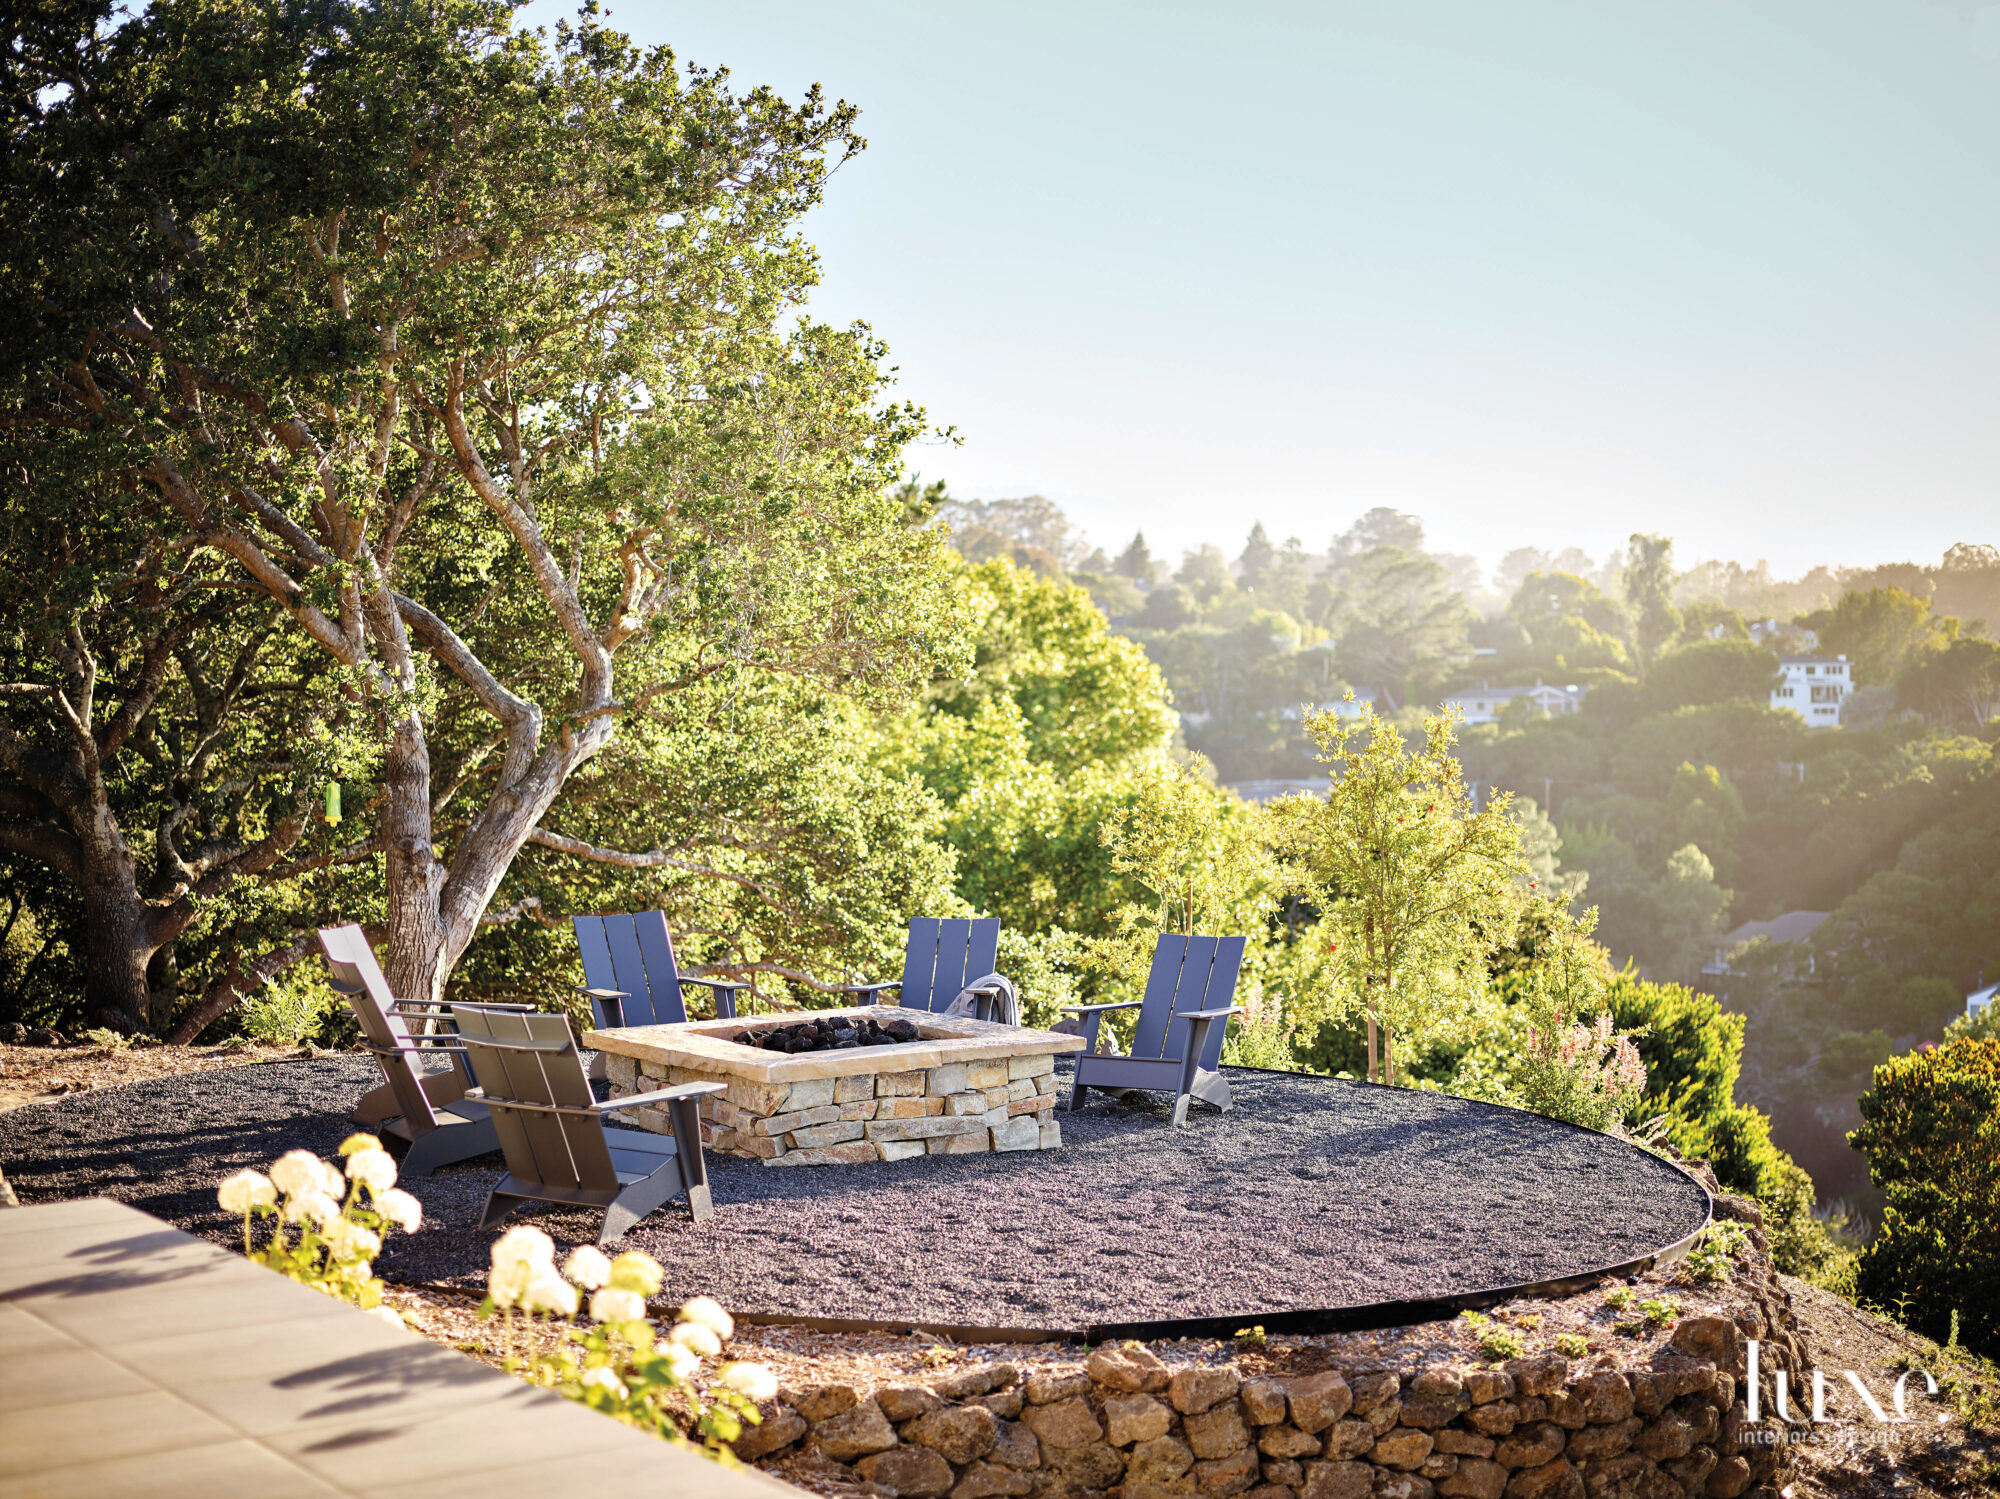 A fire pit area is placed on a hillside, it has a tree-filled view.